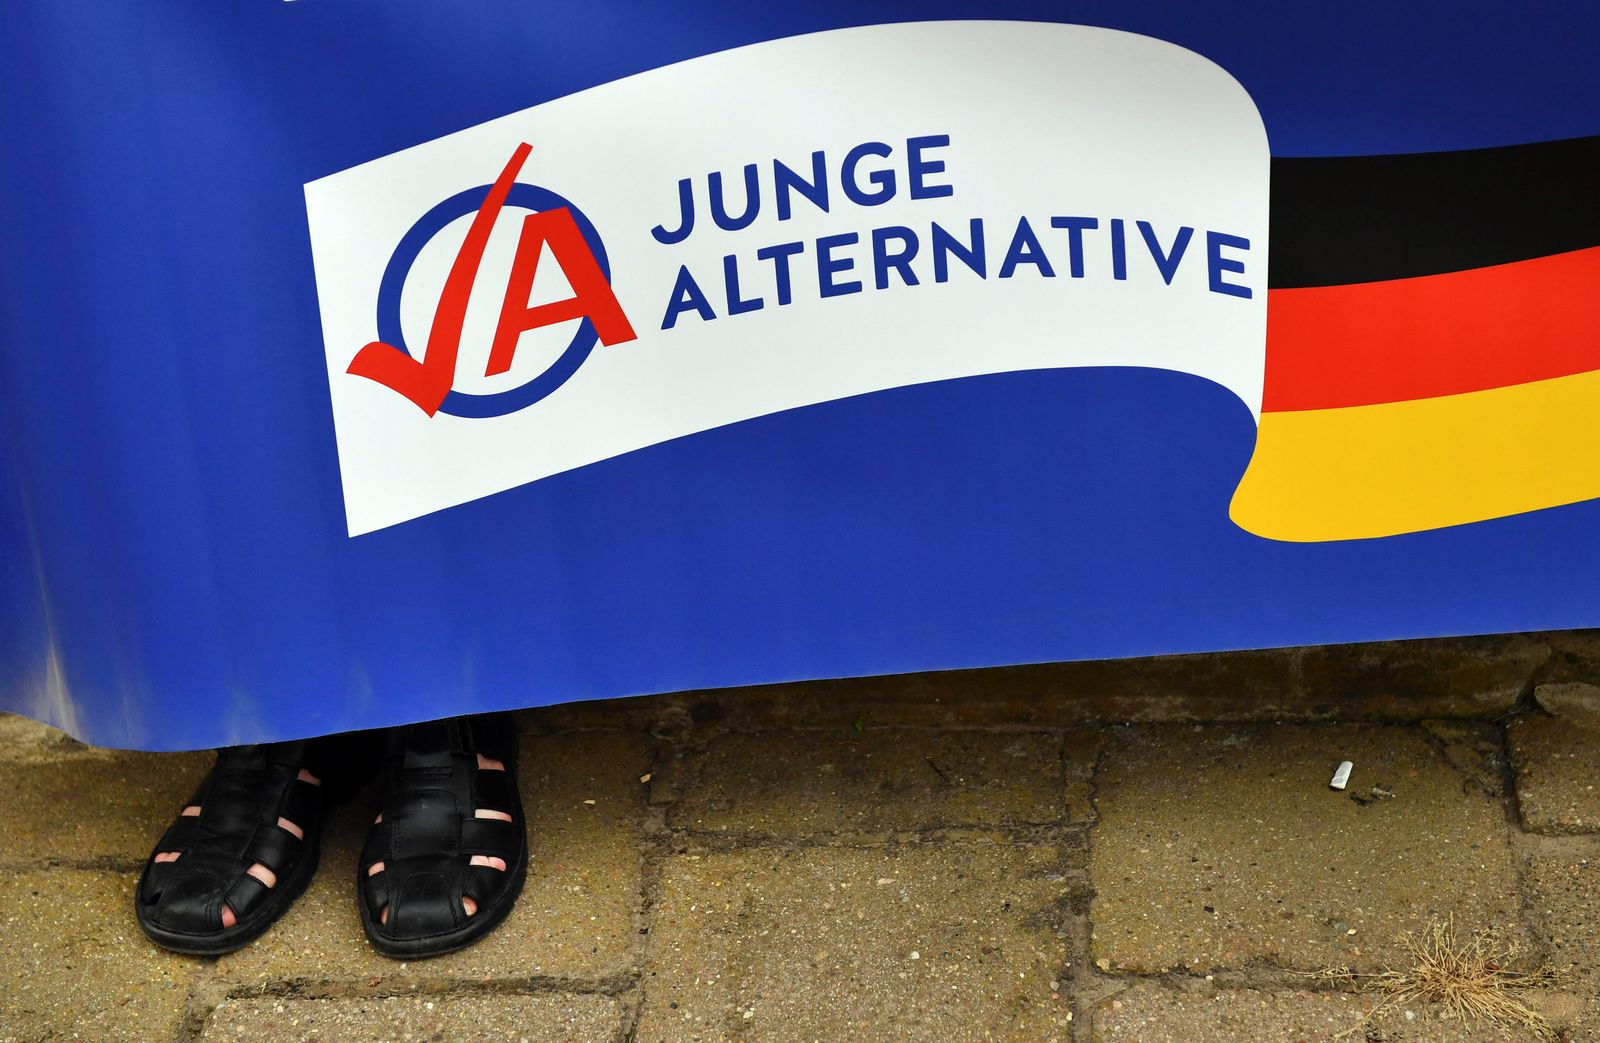 Junge Alternative / AfD